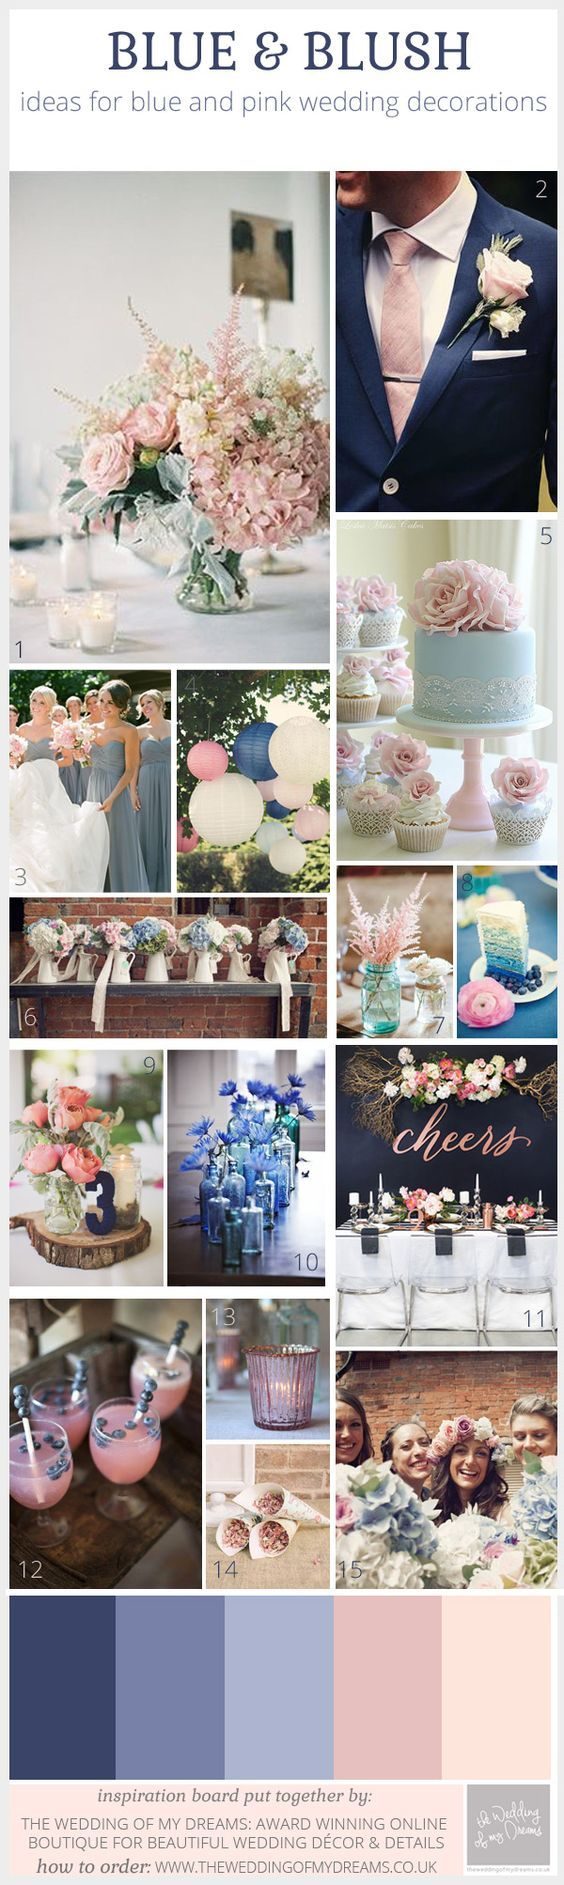 Blue And Blush Pink Wedding Decorations U2013 Inspiration Board